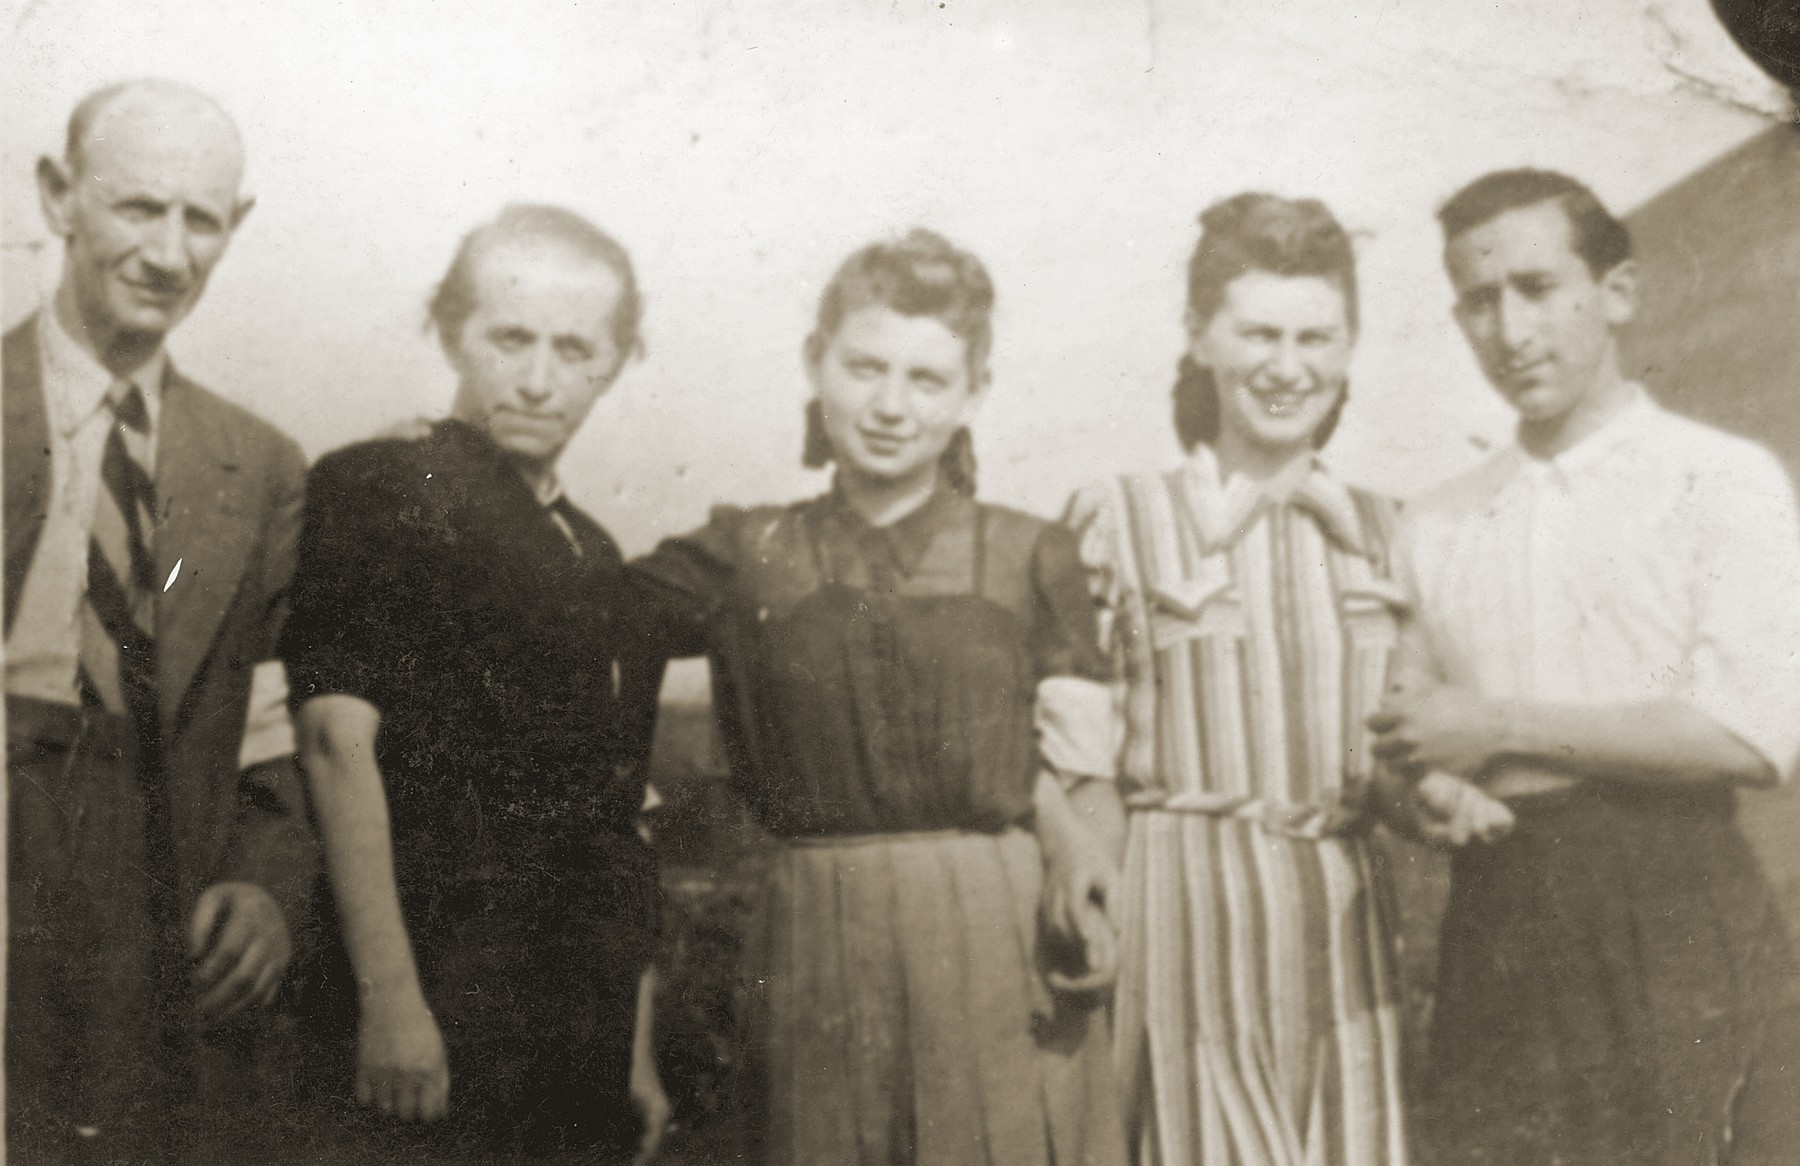 Szmulek Lustiger poses with his wife and her family in the Bedzin ghetto.  From right to left are Szmulek Lustiger, Charlotte Eisner Lustiger, Charlotte's sister, Gitl Eisner and Salomon Eisner.